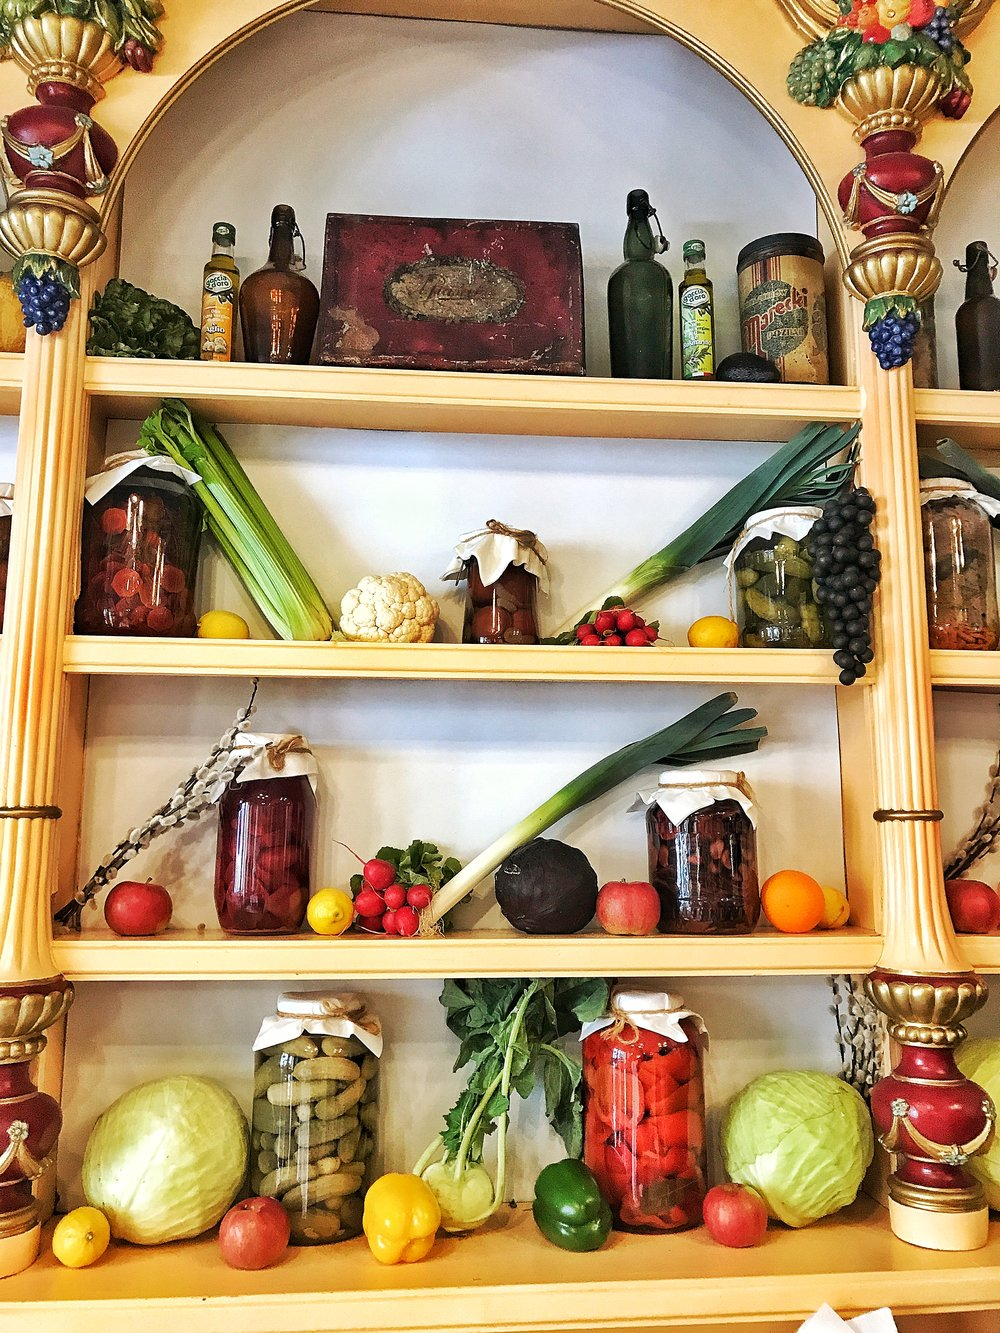 veggie shelf display.jpg